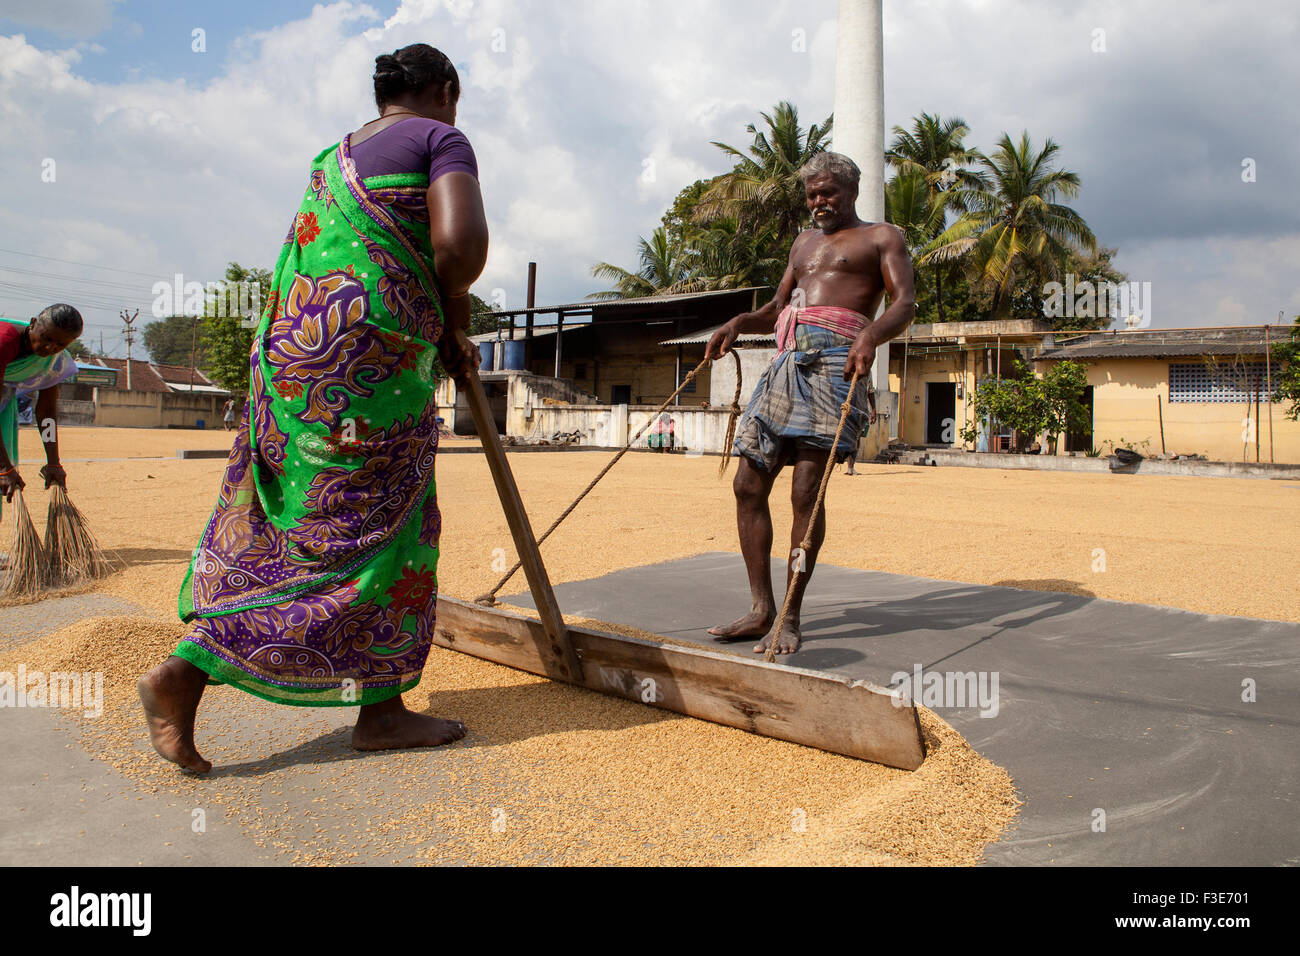 Workers spreading rice out to dry in Kanchipuram - Stock Image